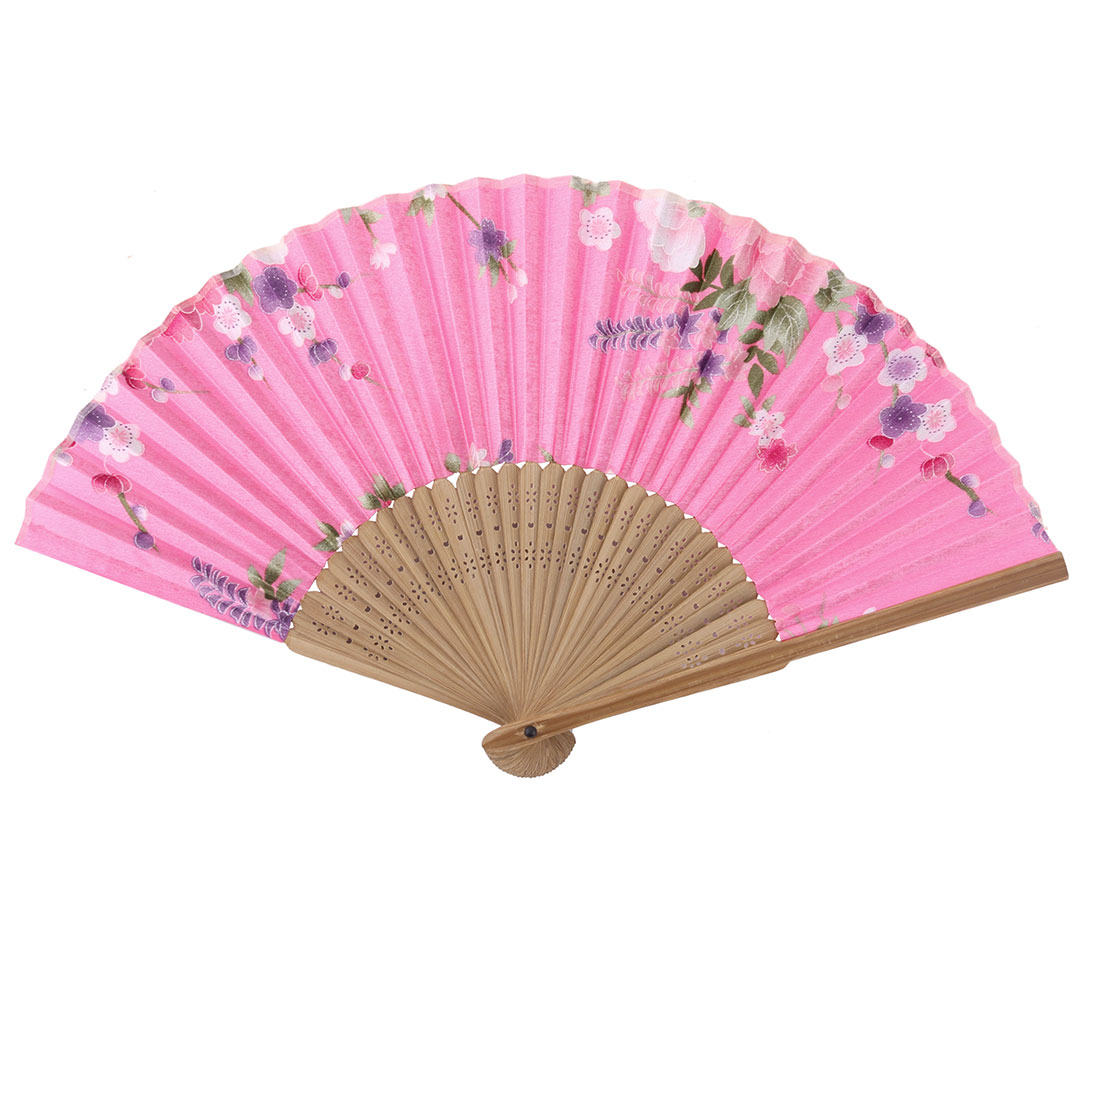 Party Decor Bamboo Frame Flower Print Handheld Folding Cooling Hand Fan Colorful